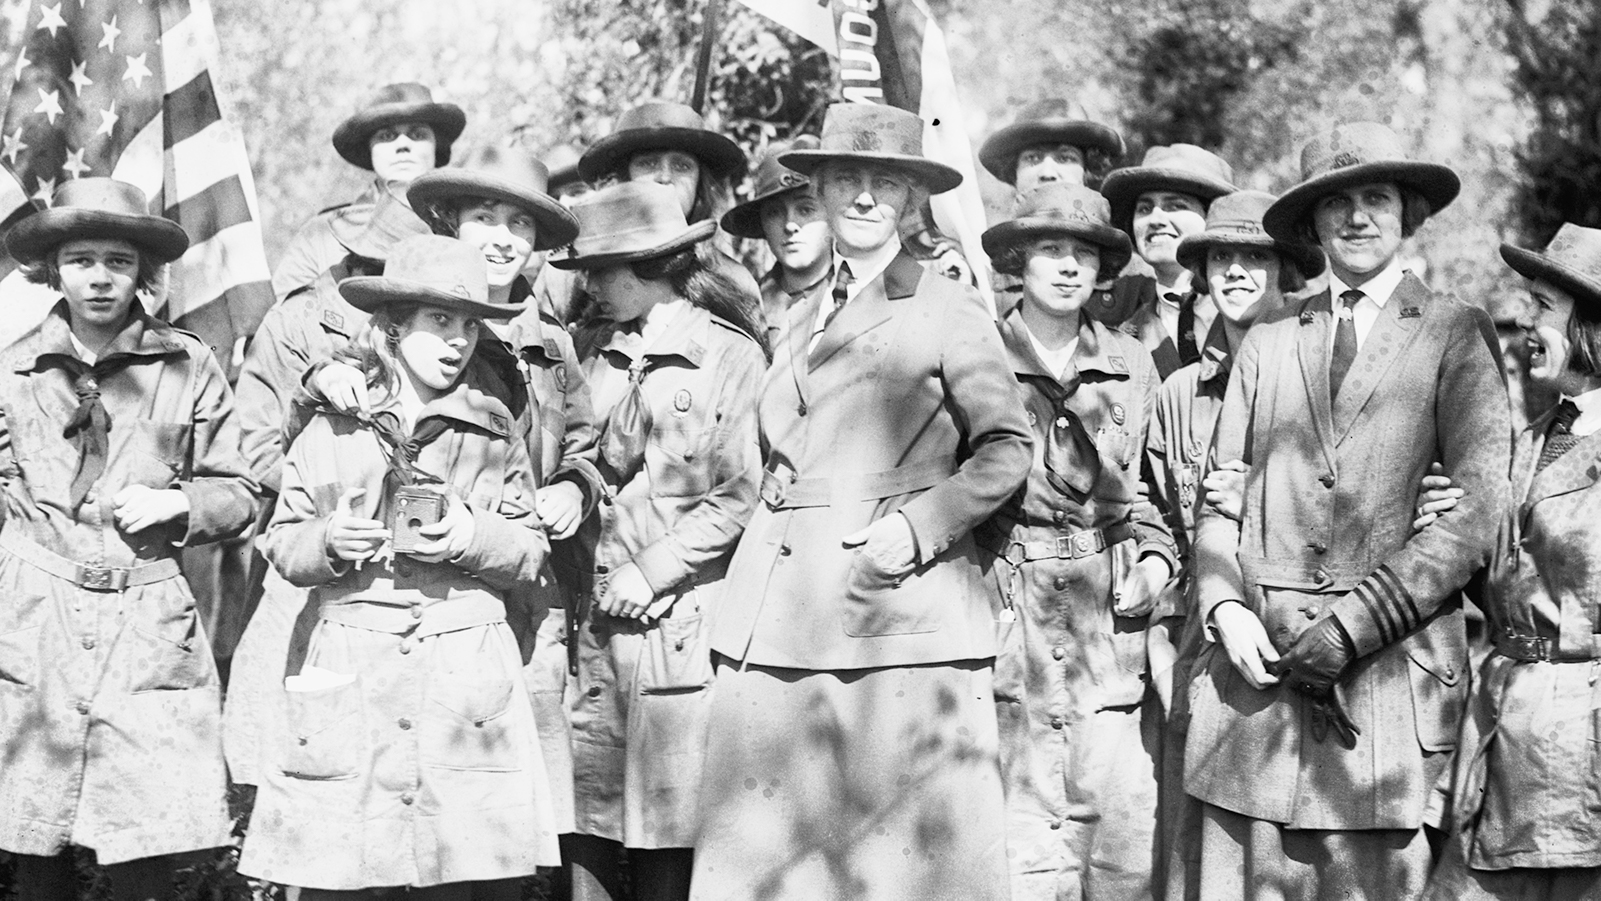 Photo of women and girls in uniform in the woods